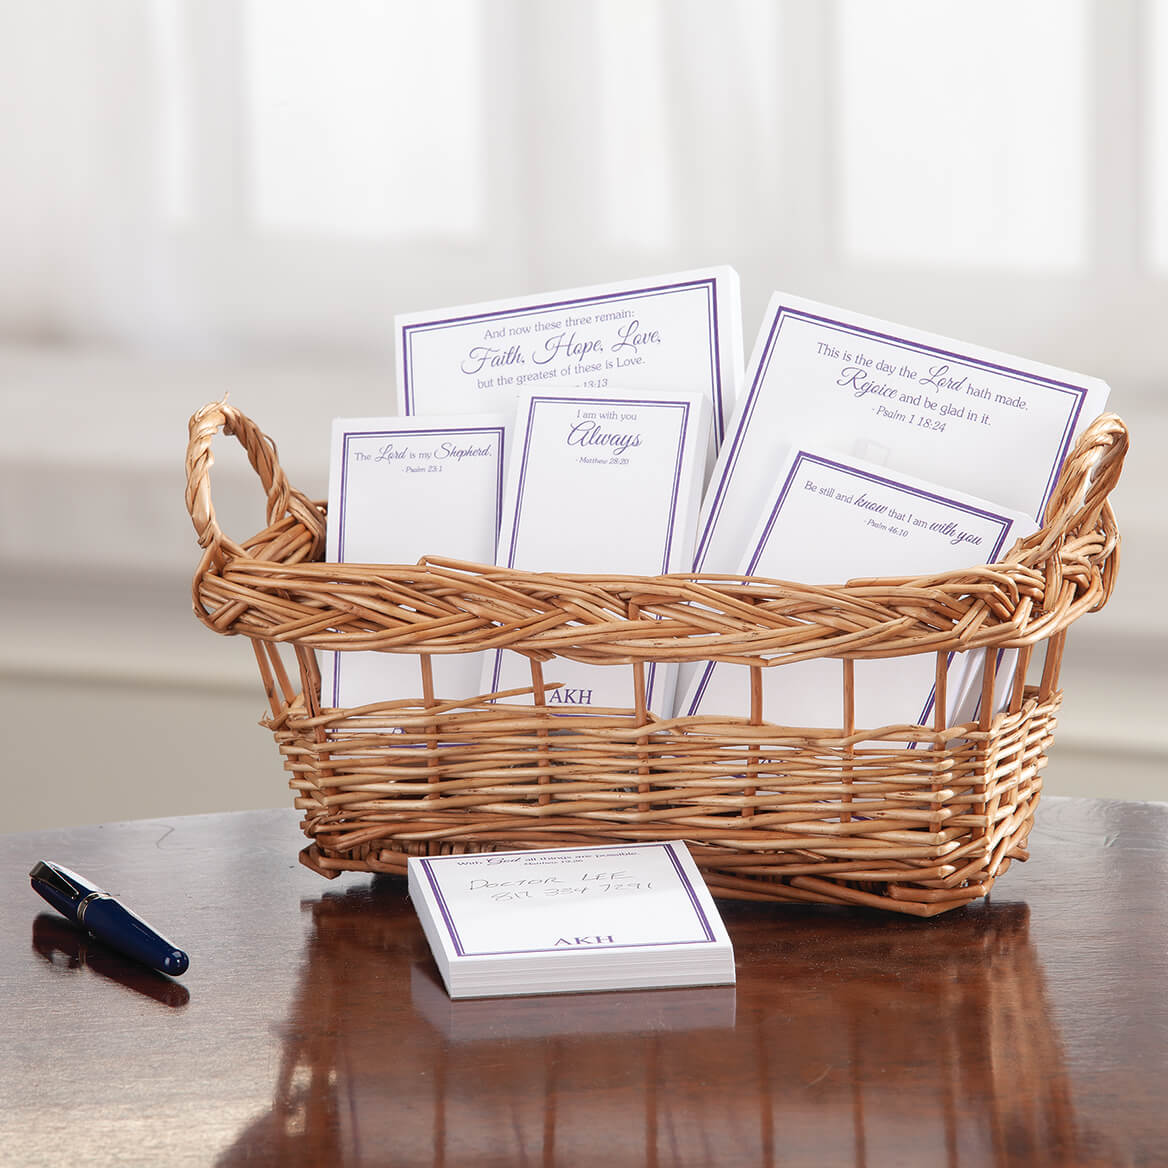 Personalized Basketful of Notes with Bible Quotes-371296